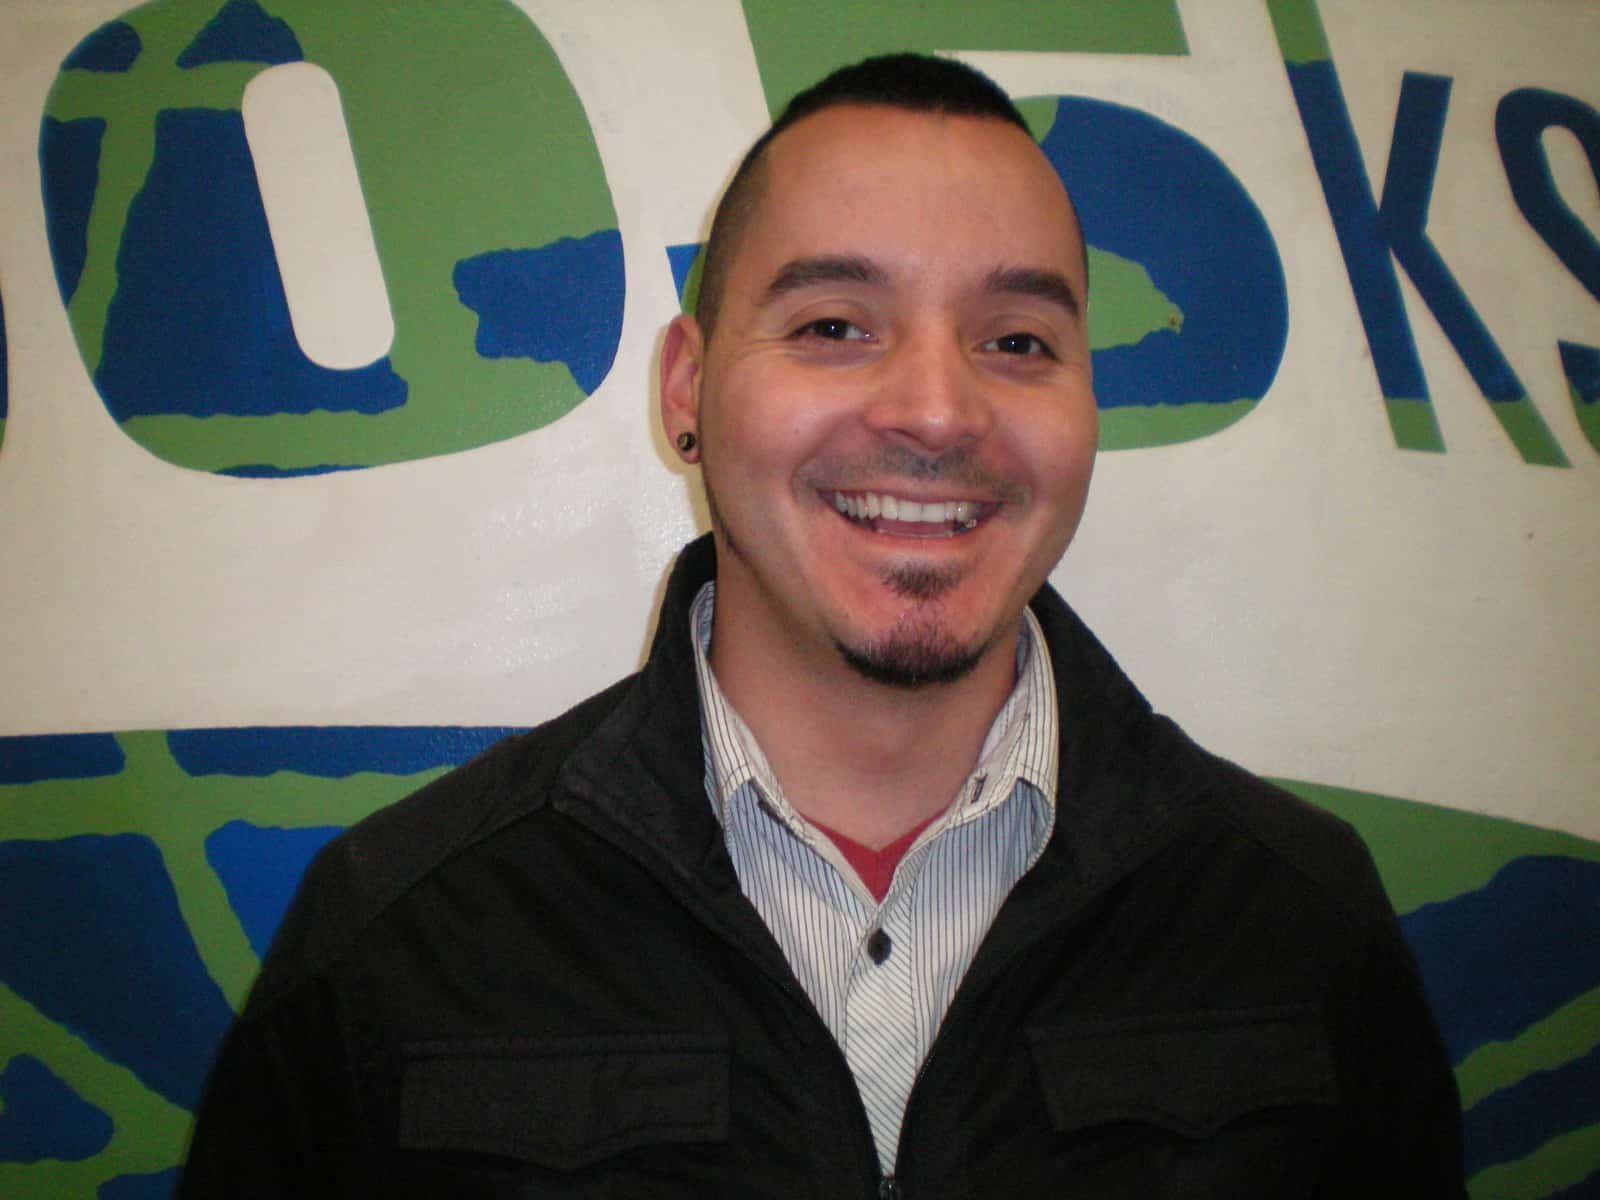 Vicente Heredia, Program Director